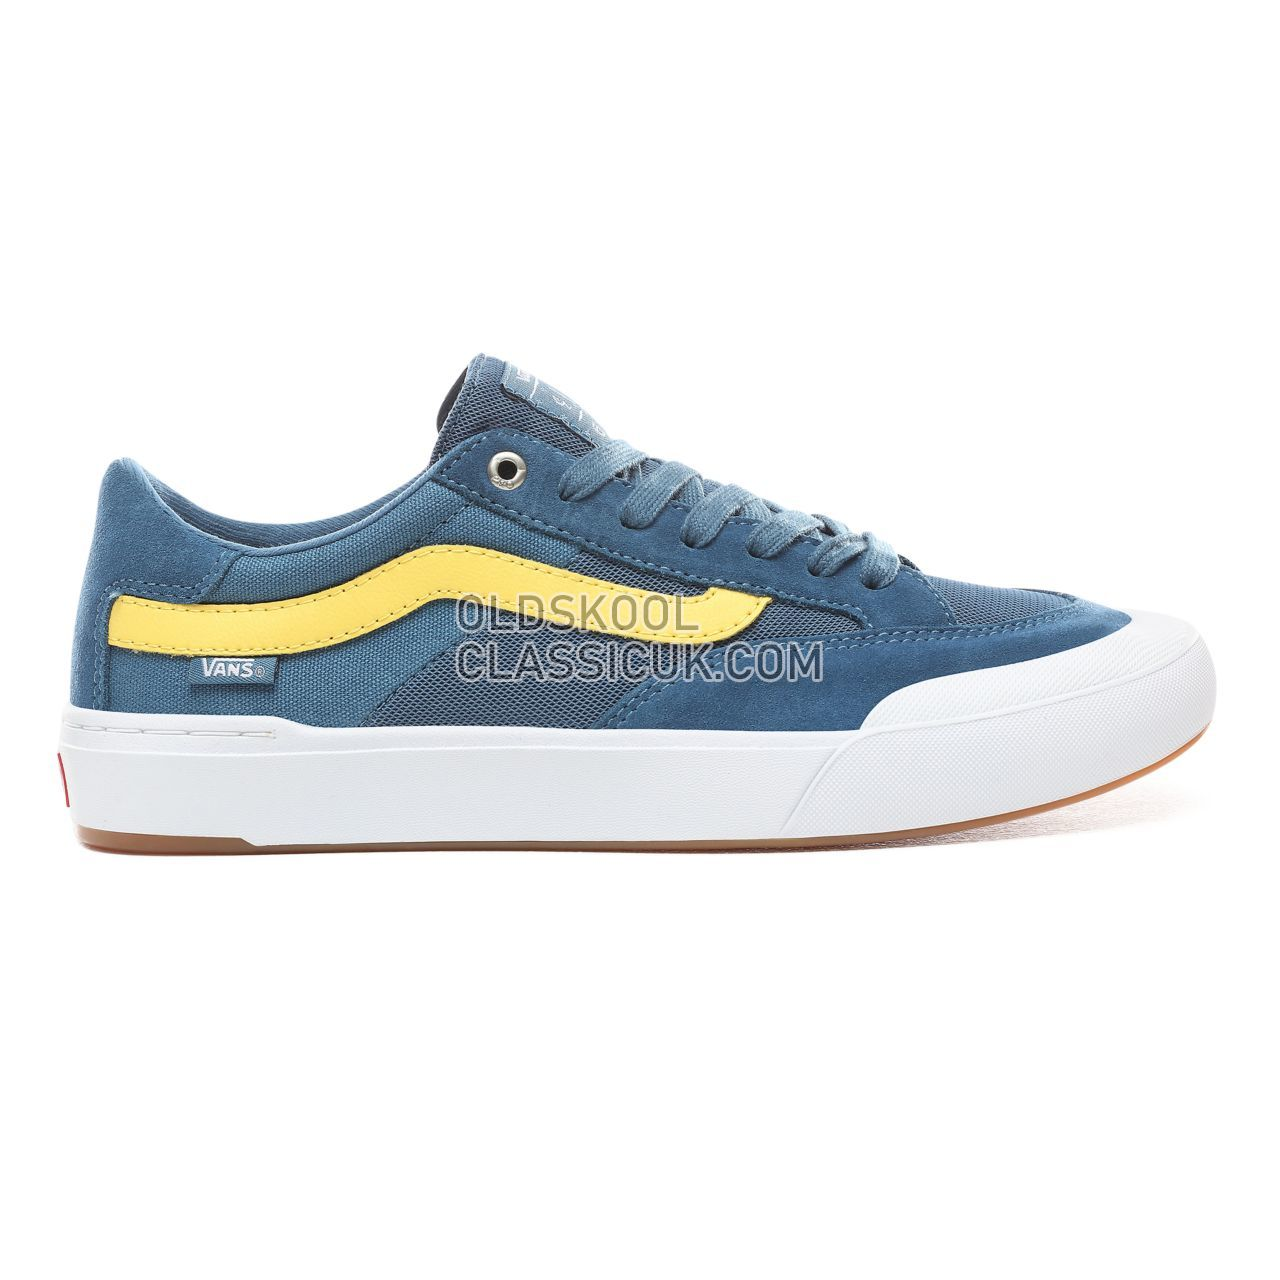 Vans Berle Pro Sneakers Mens Stv Navy VN0A3WKXSN0 Shoes